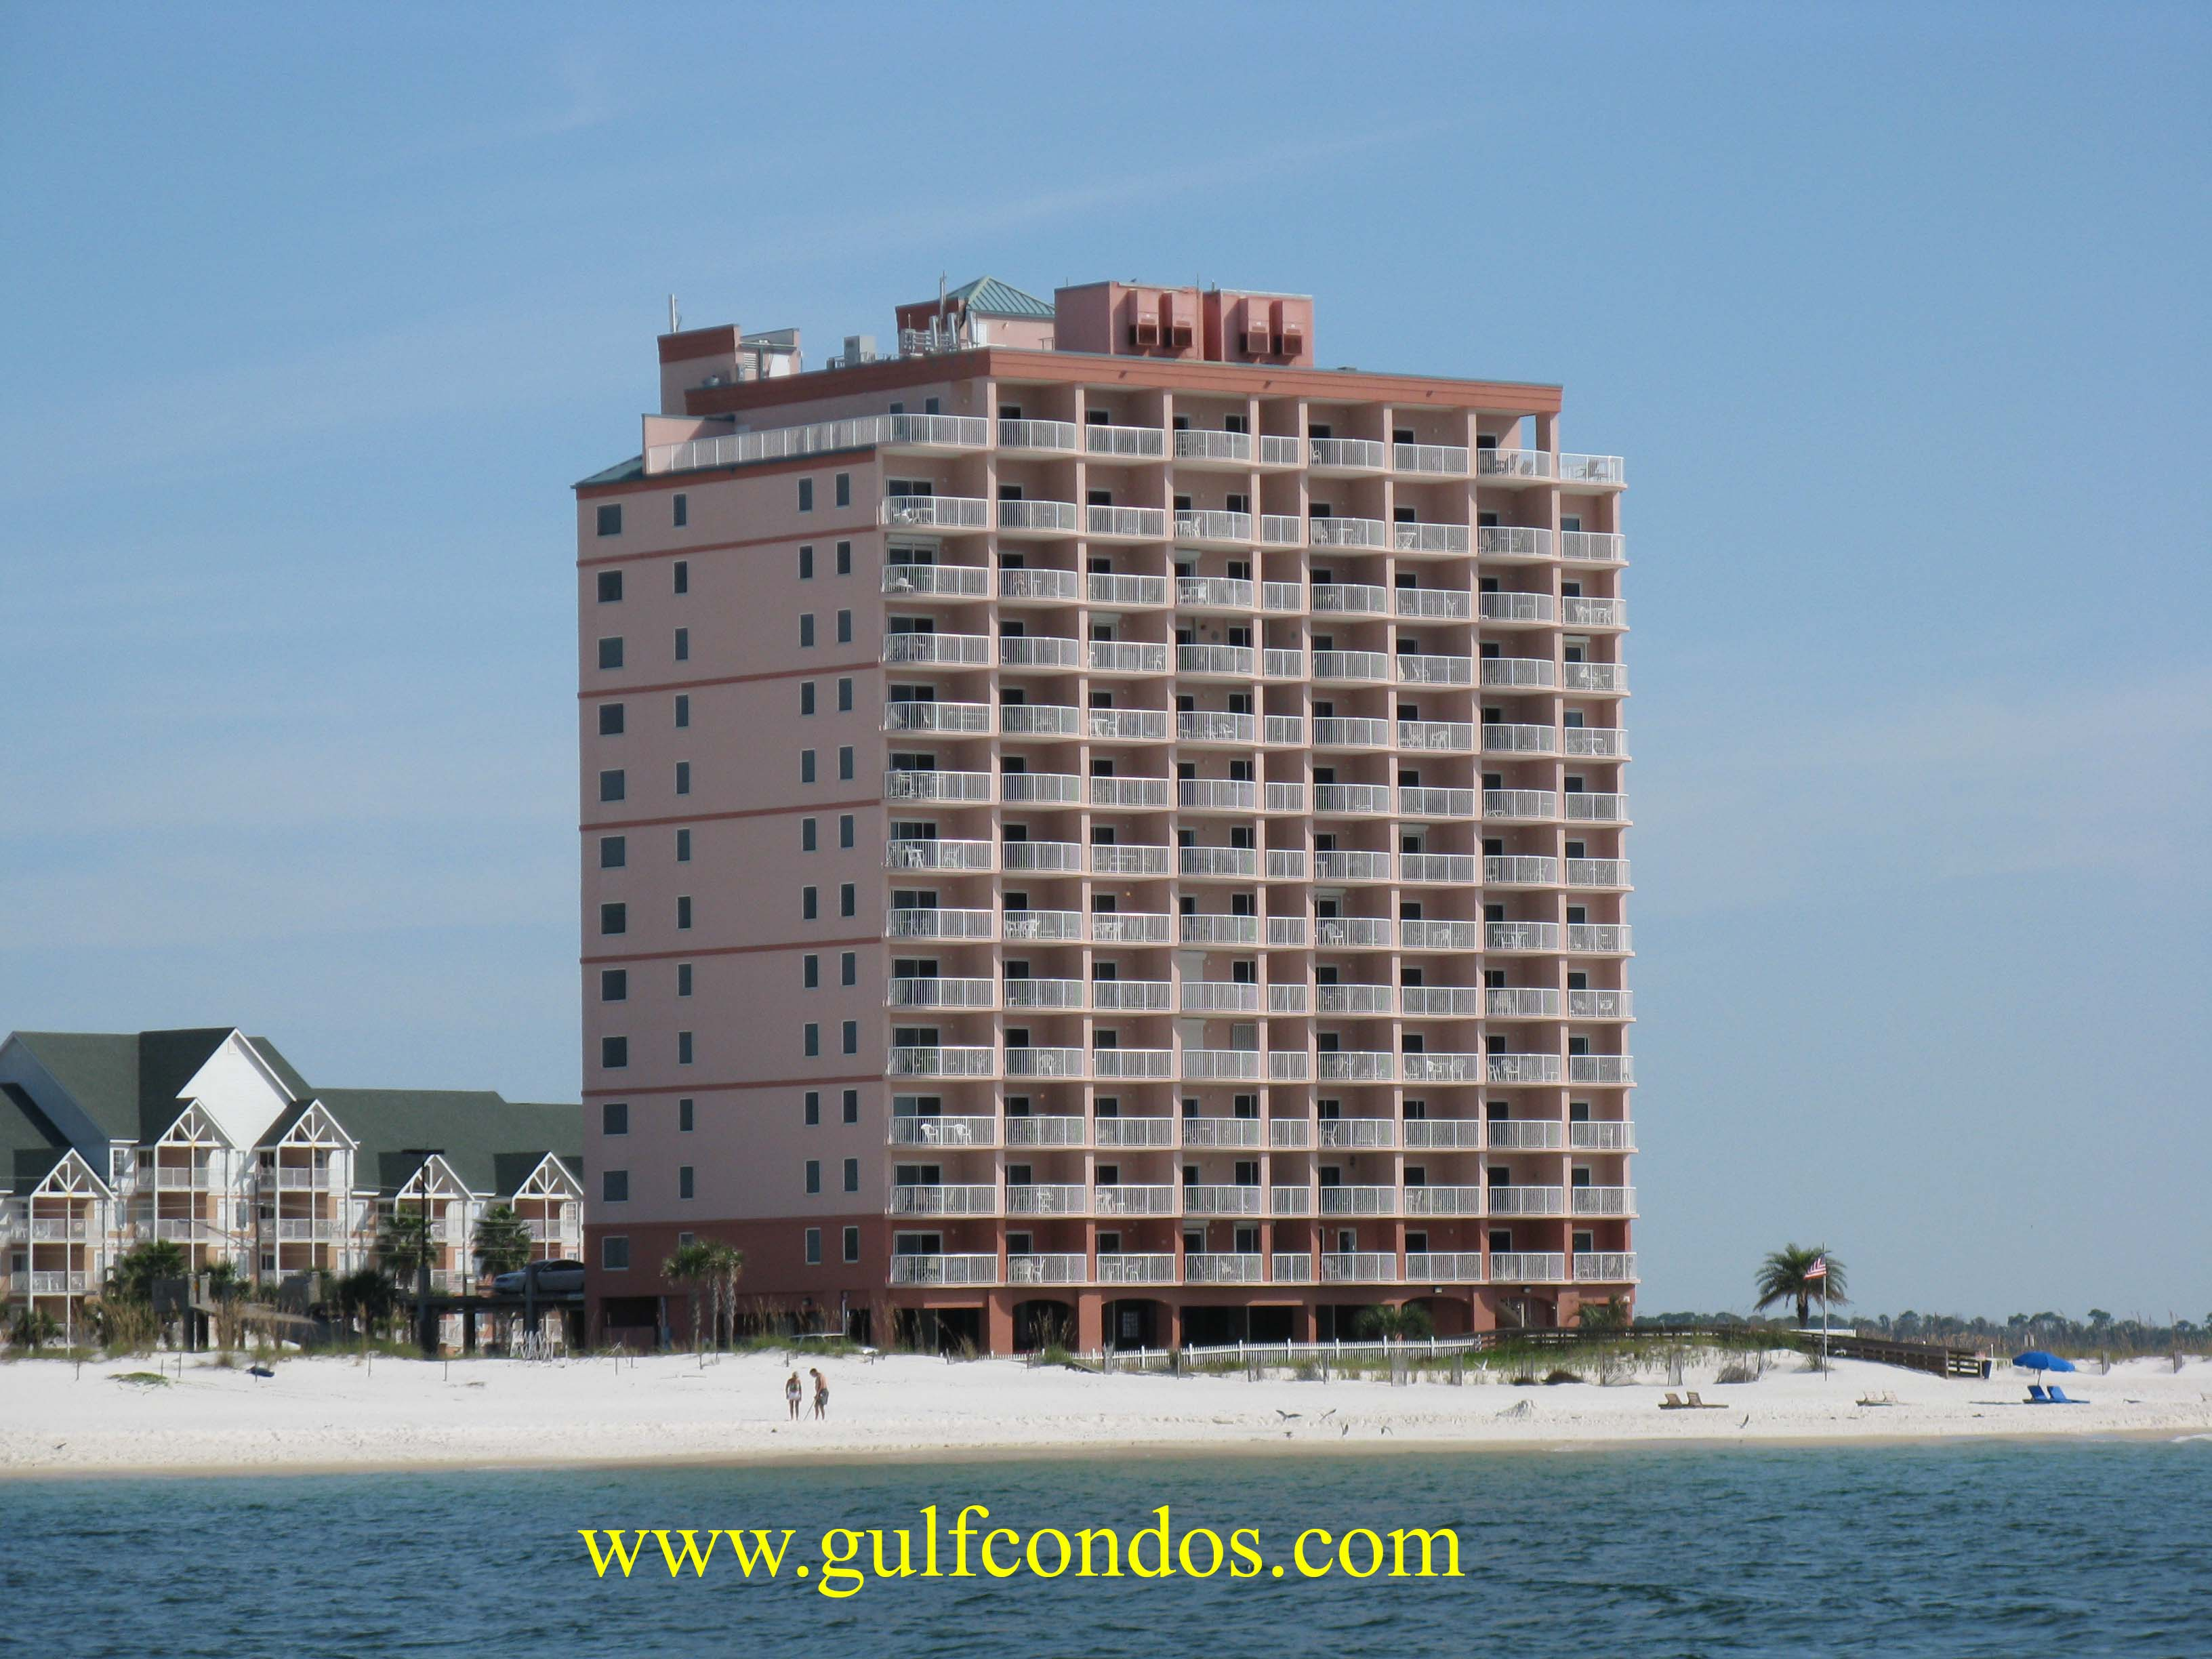 Royal Palms Is Located Rox 1 Mile West Of Hwy 59s At 567 East Beach Blvd In Gulf Ss Al